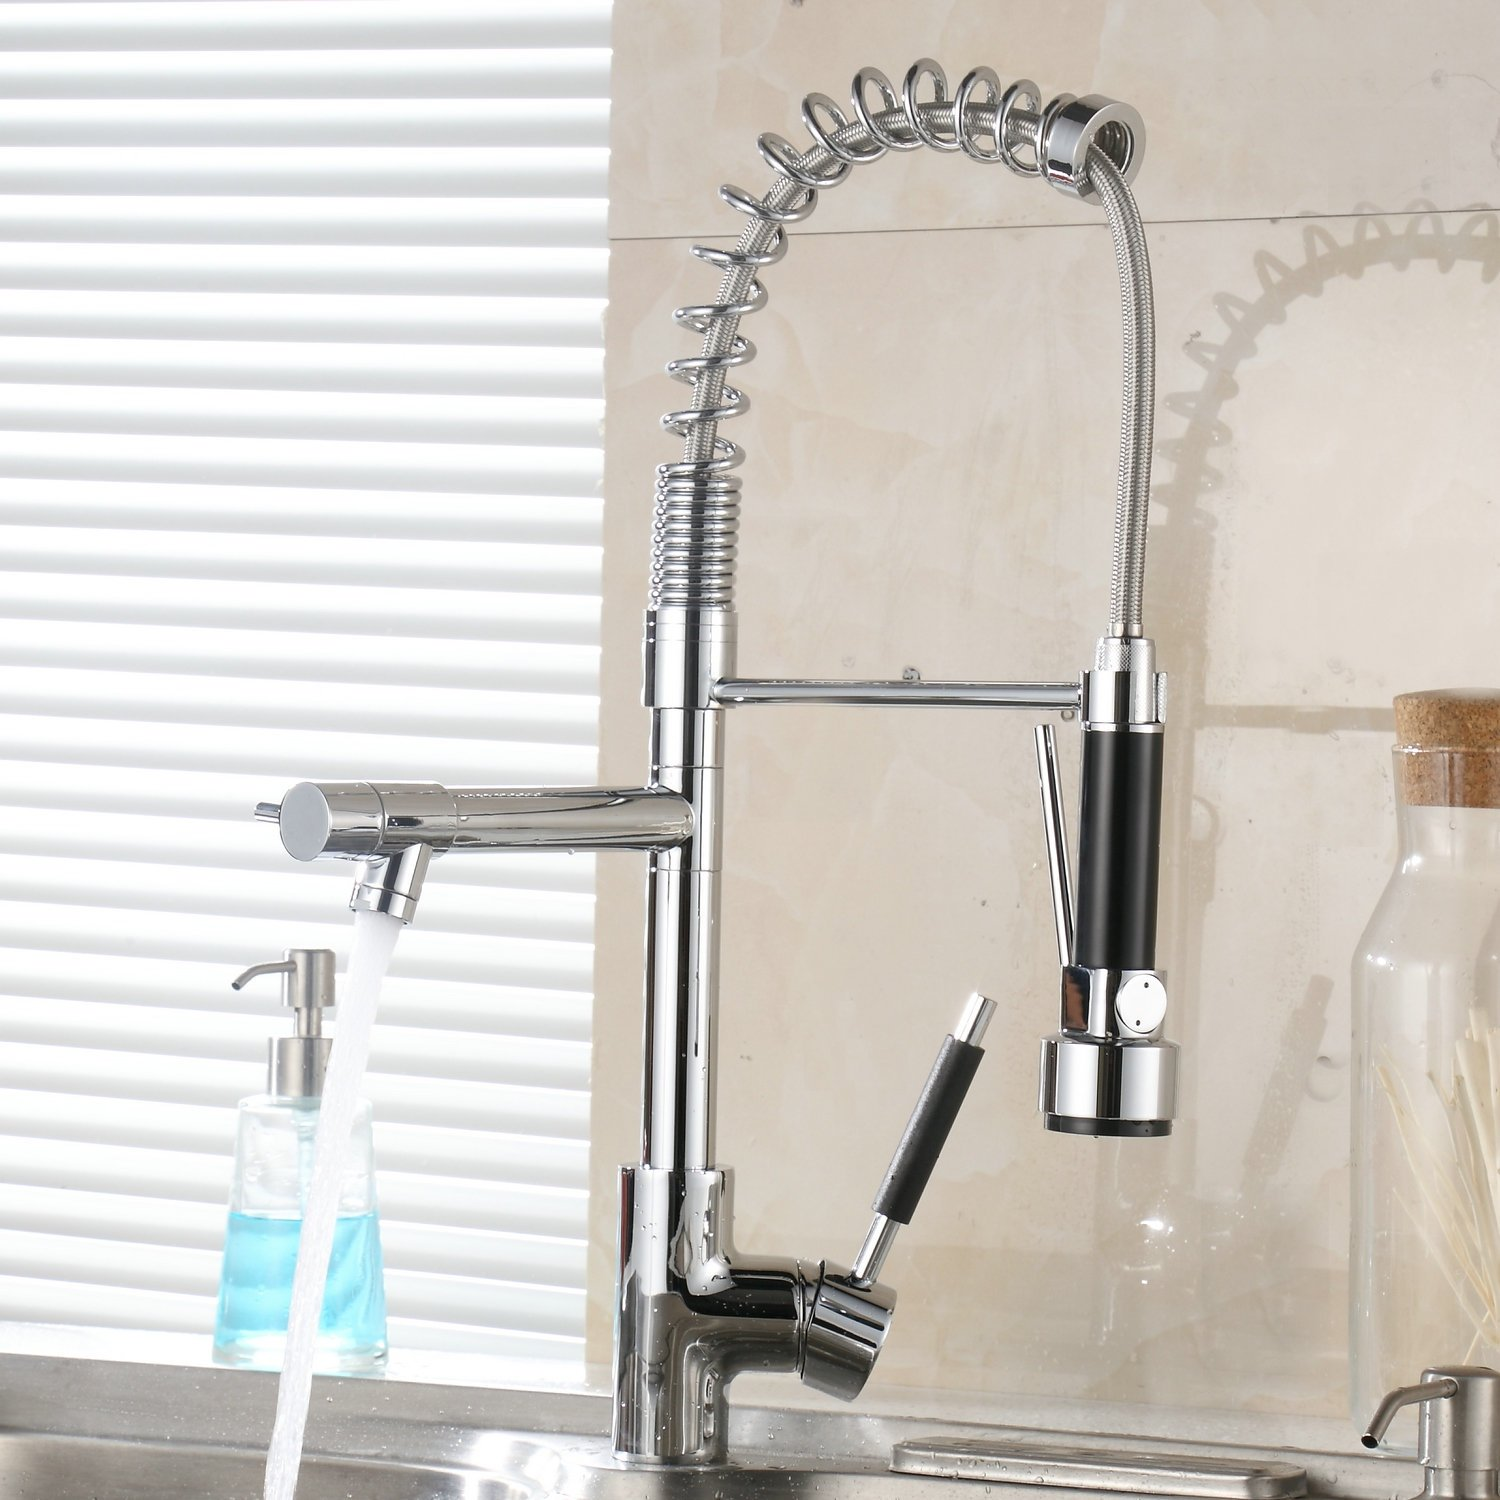 Beelee BL0783NP 20 Contemporary Spring Single Handle Kitchen Sink Faucet with Pull Down Sprayer, Brushed Nickel Bela